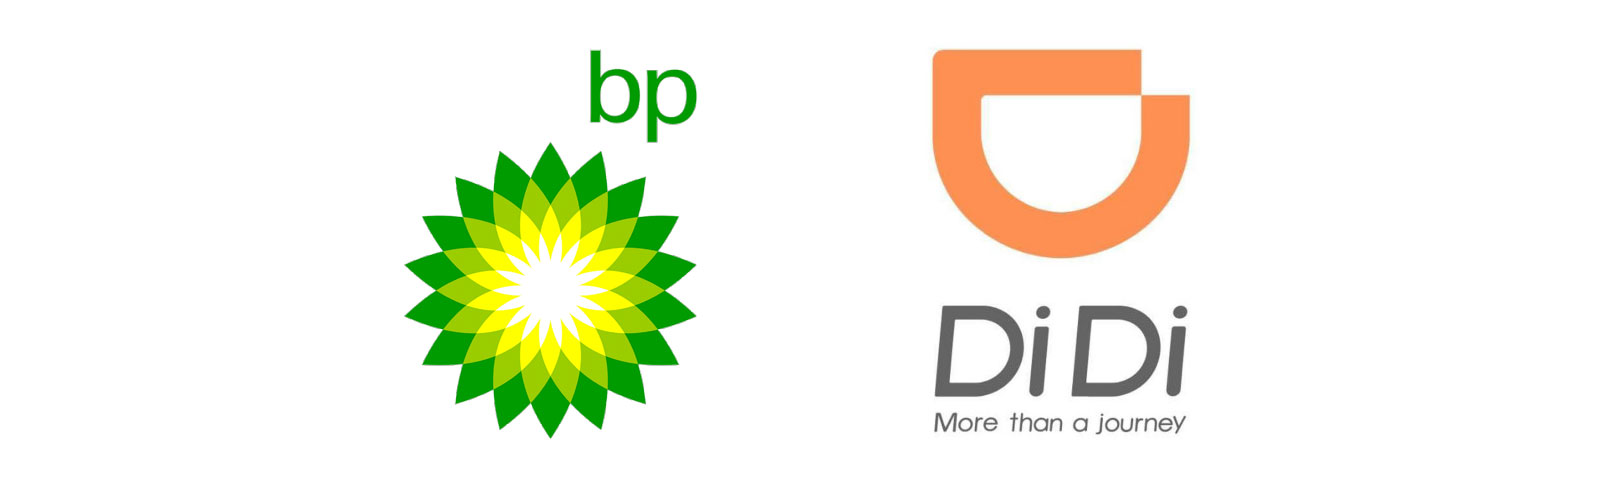 British Petroleum and DiDi Chuxing will build an EV charging network in China